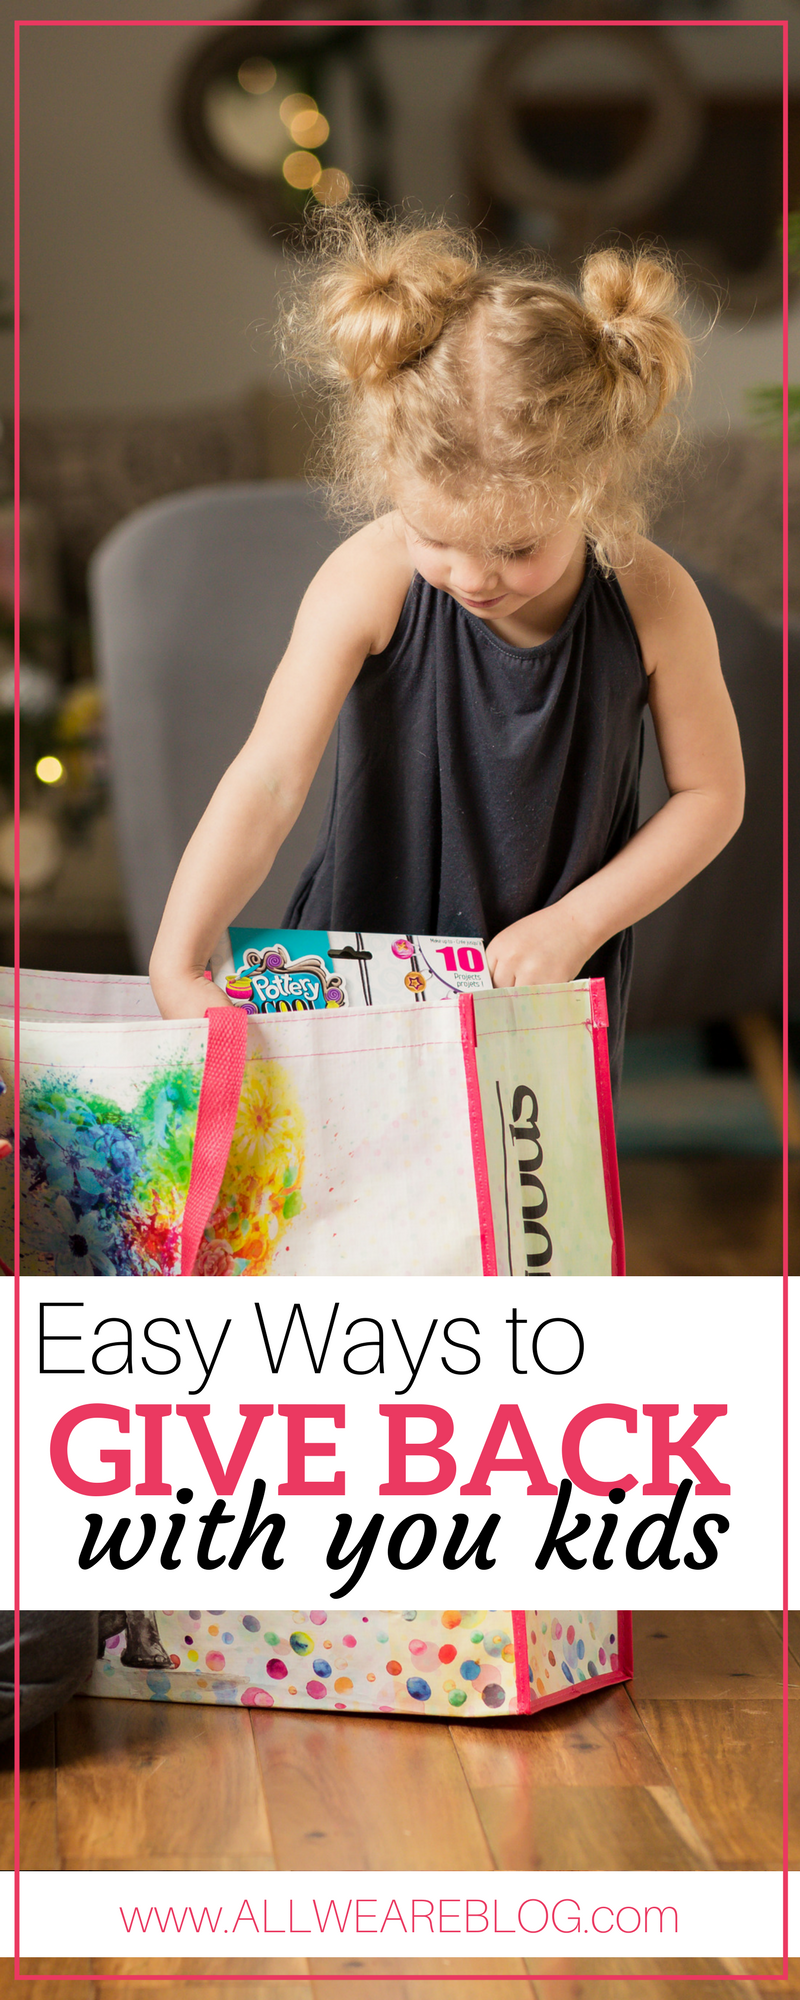 easy ways to give back with your kids